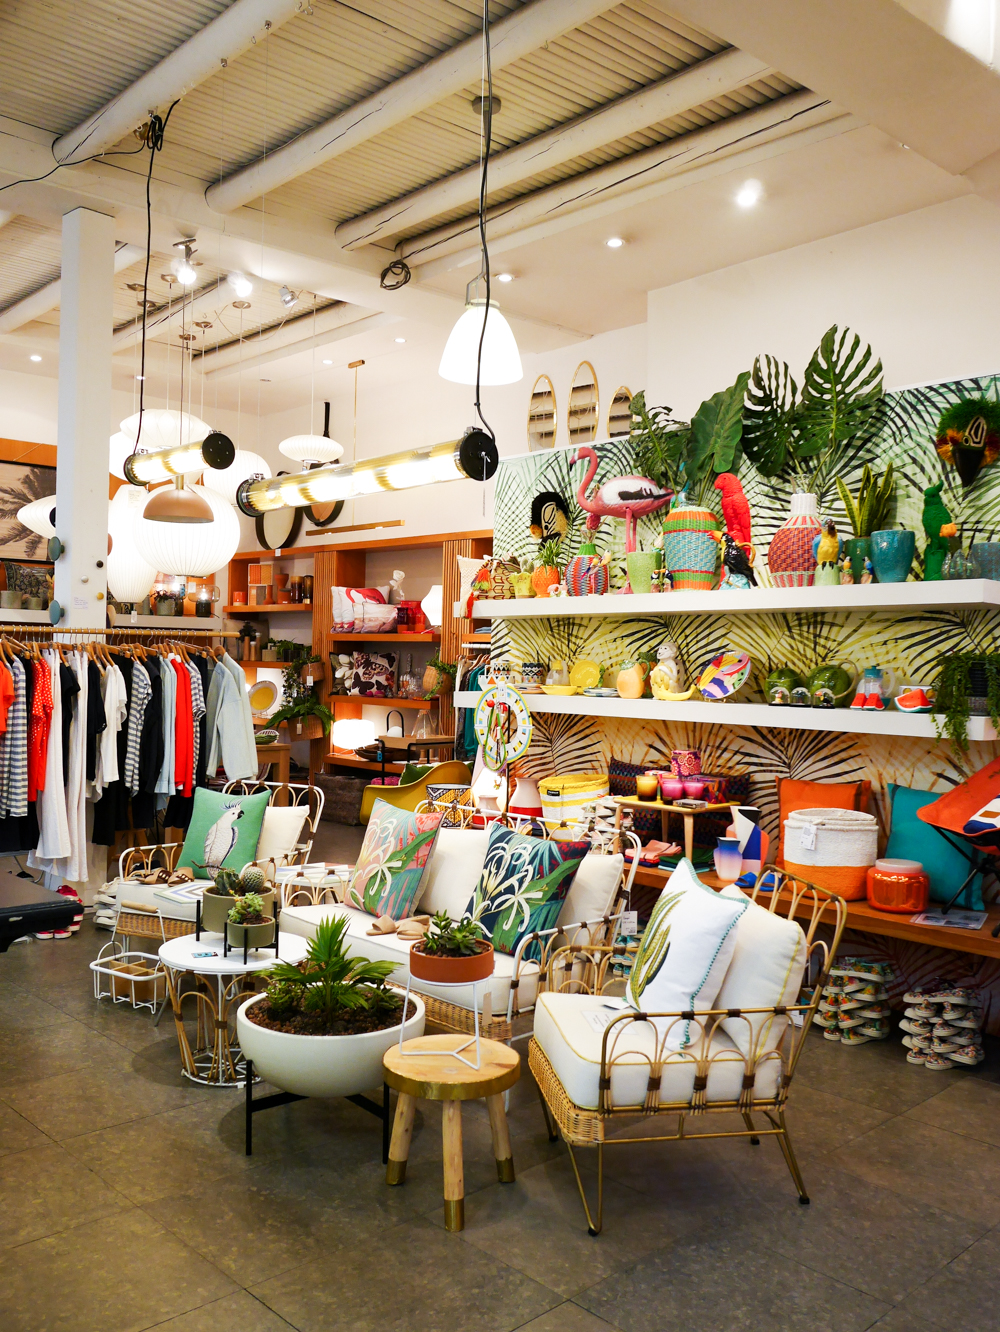 Shopping d co home autour du monde bensimon lili in wonderland - Magasin deco dijon ...